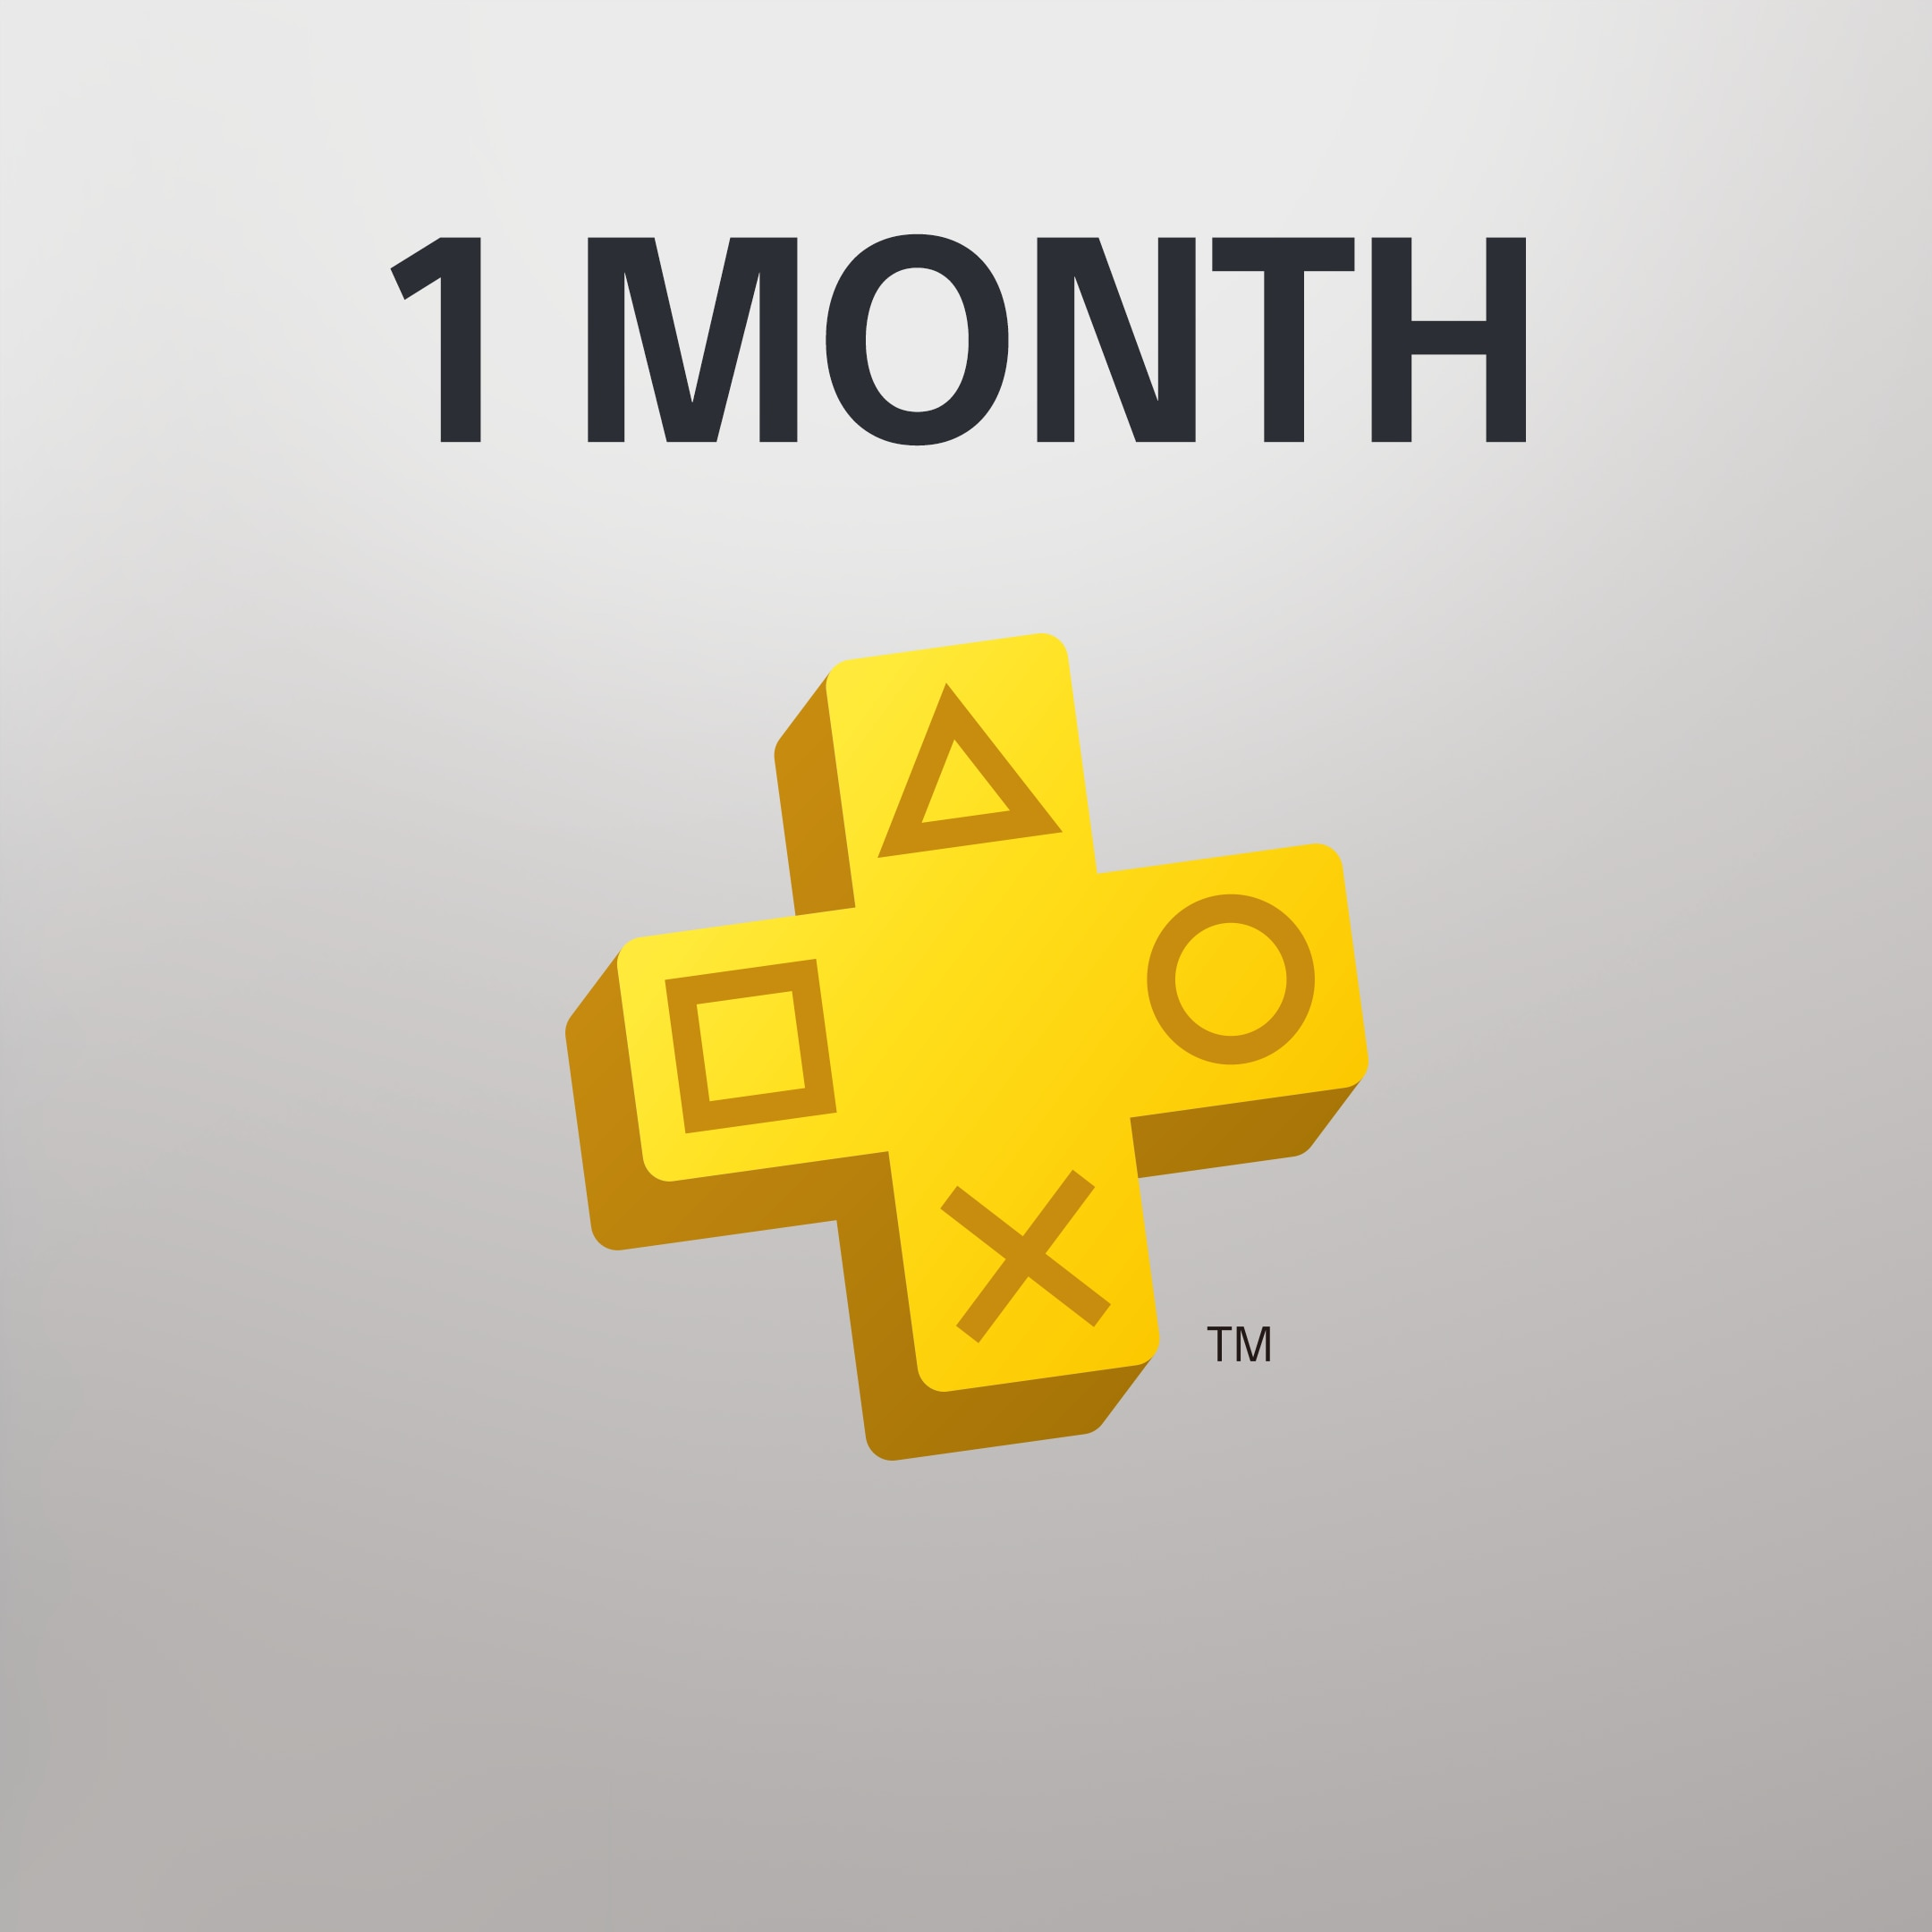 PlayStation Plus (1 MONTH MEMBERSHIP)